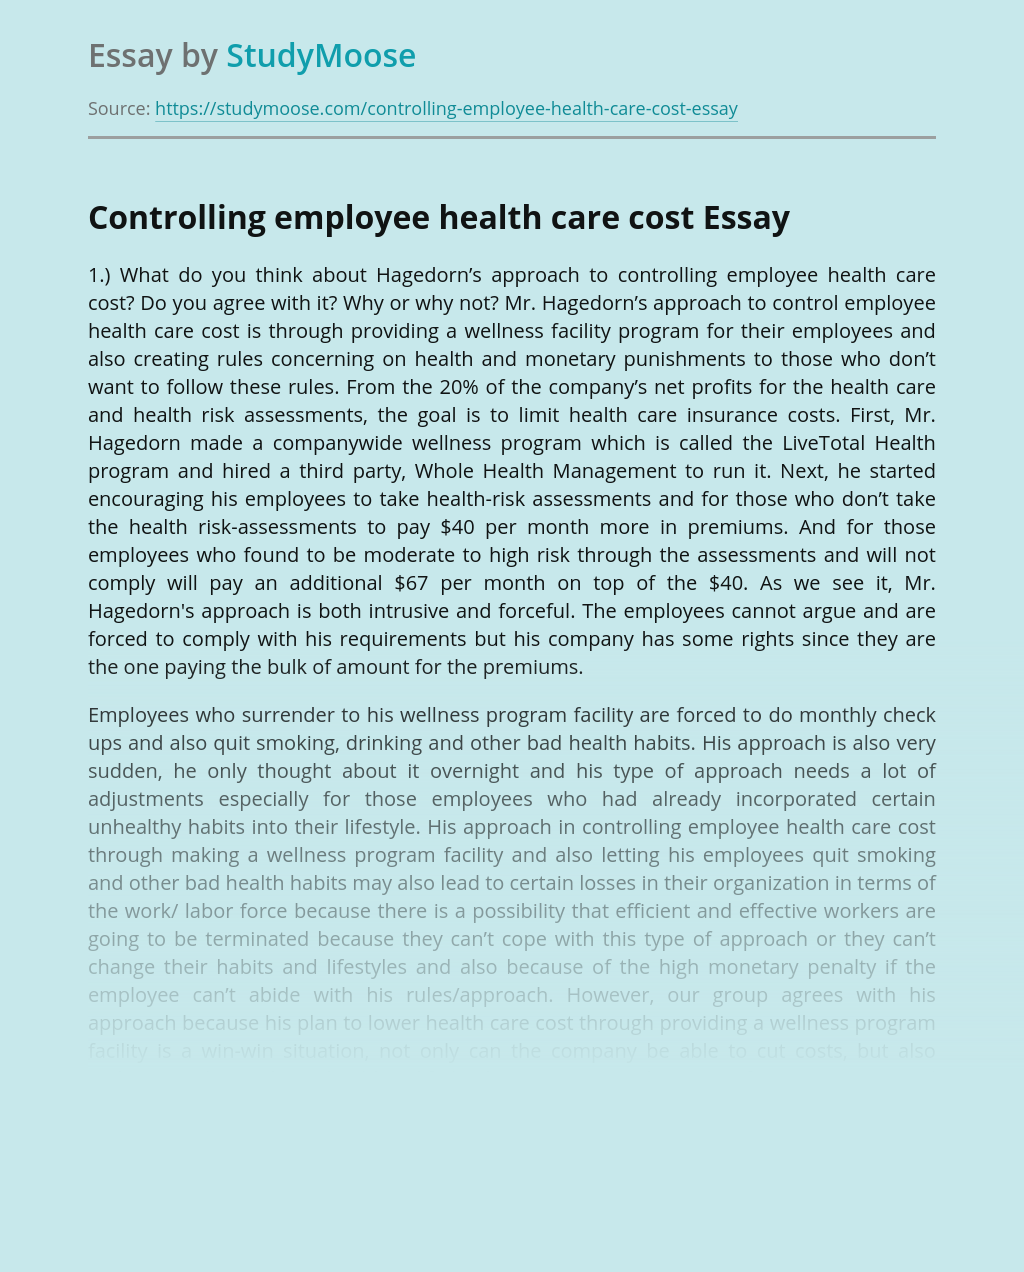 Controlling employee health care cost